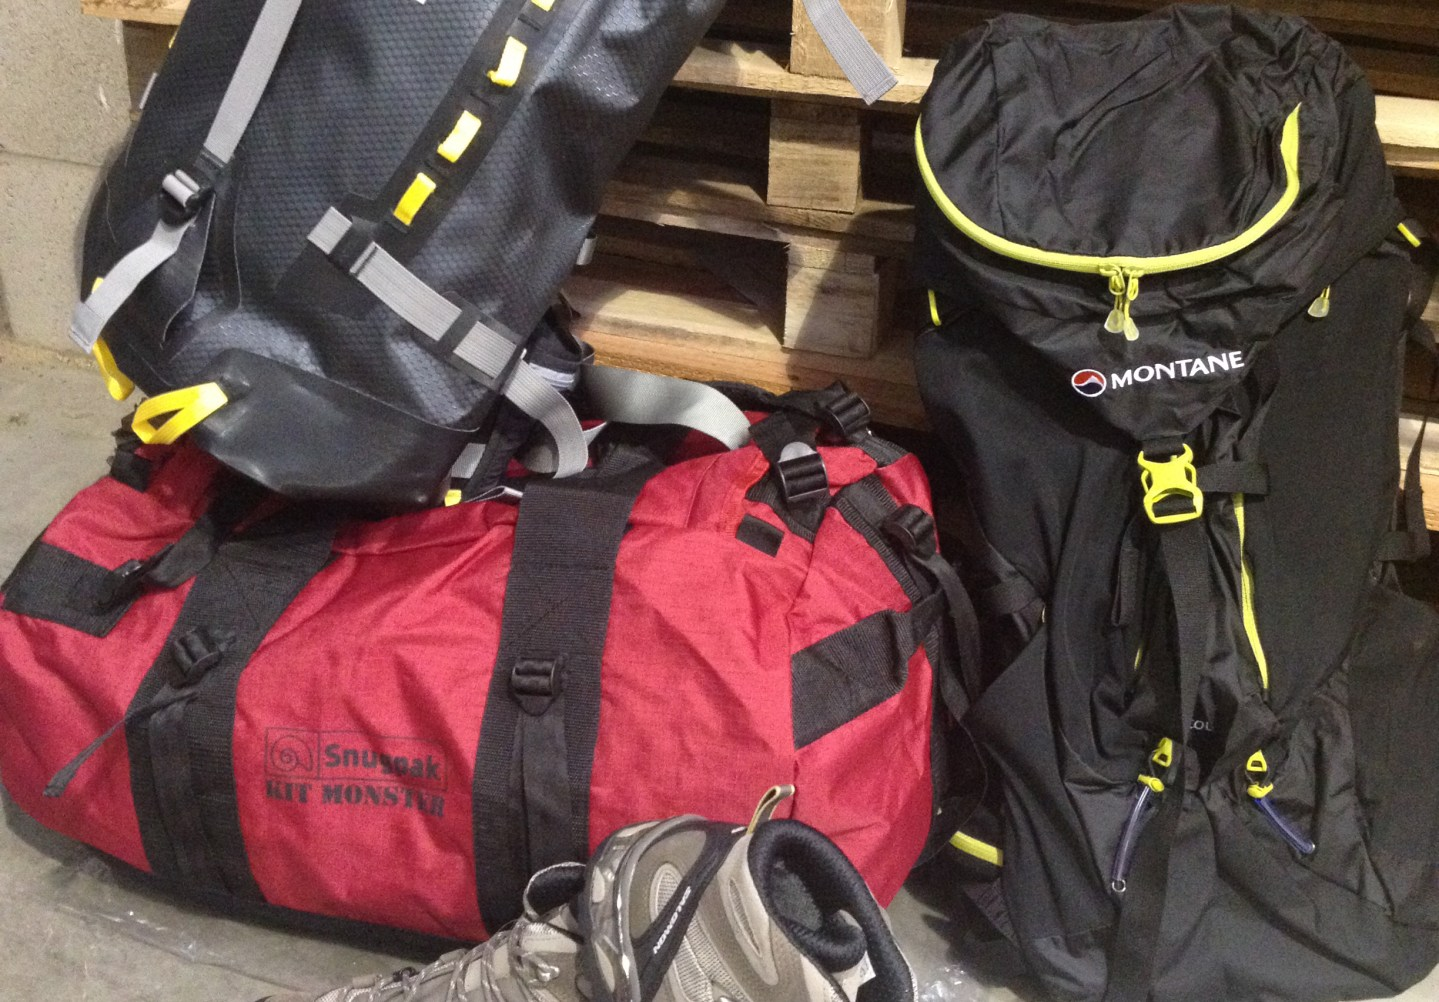 Guest Post: Choosing A Backpack For Your Gap Year